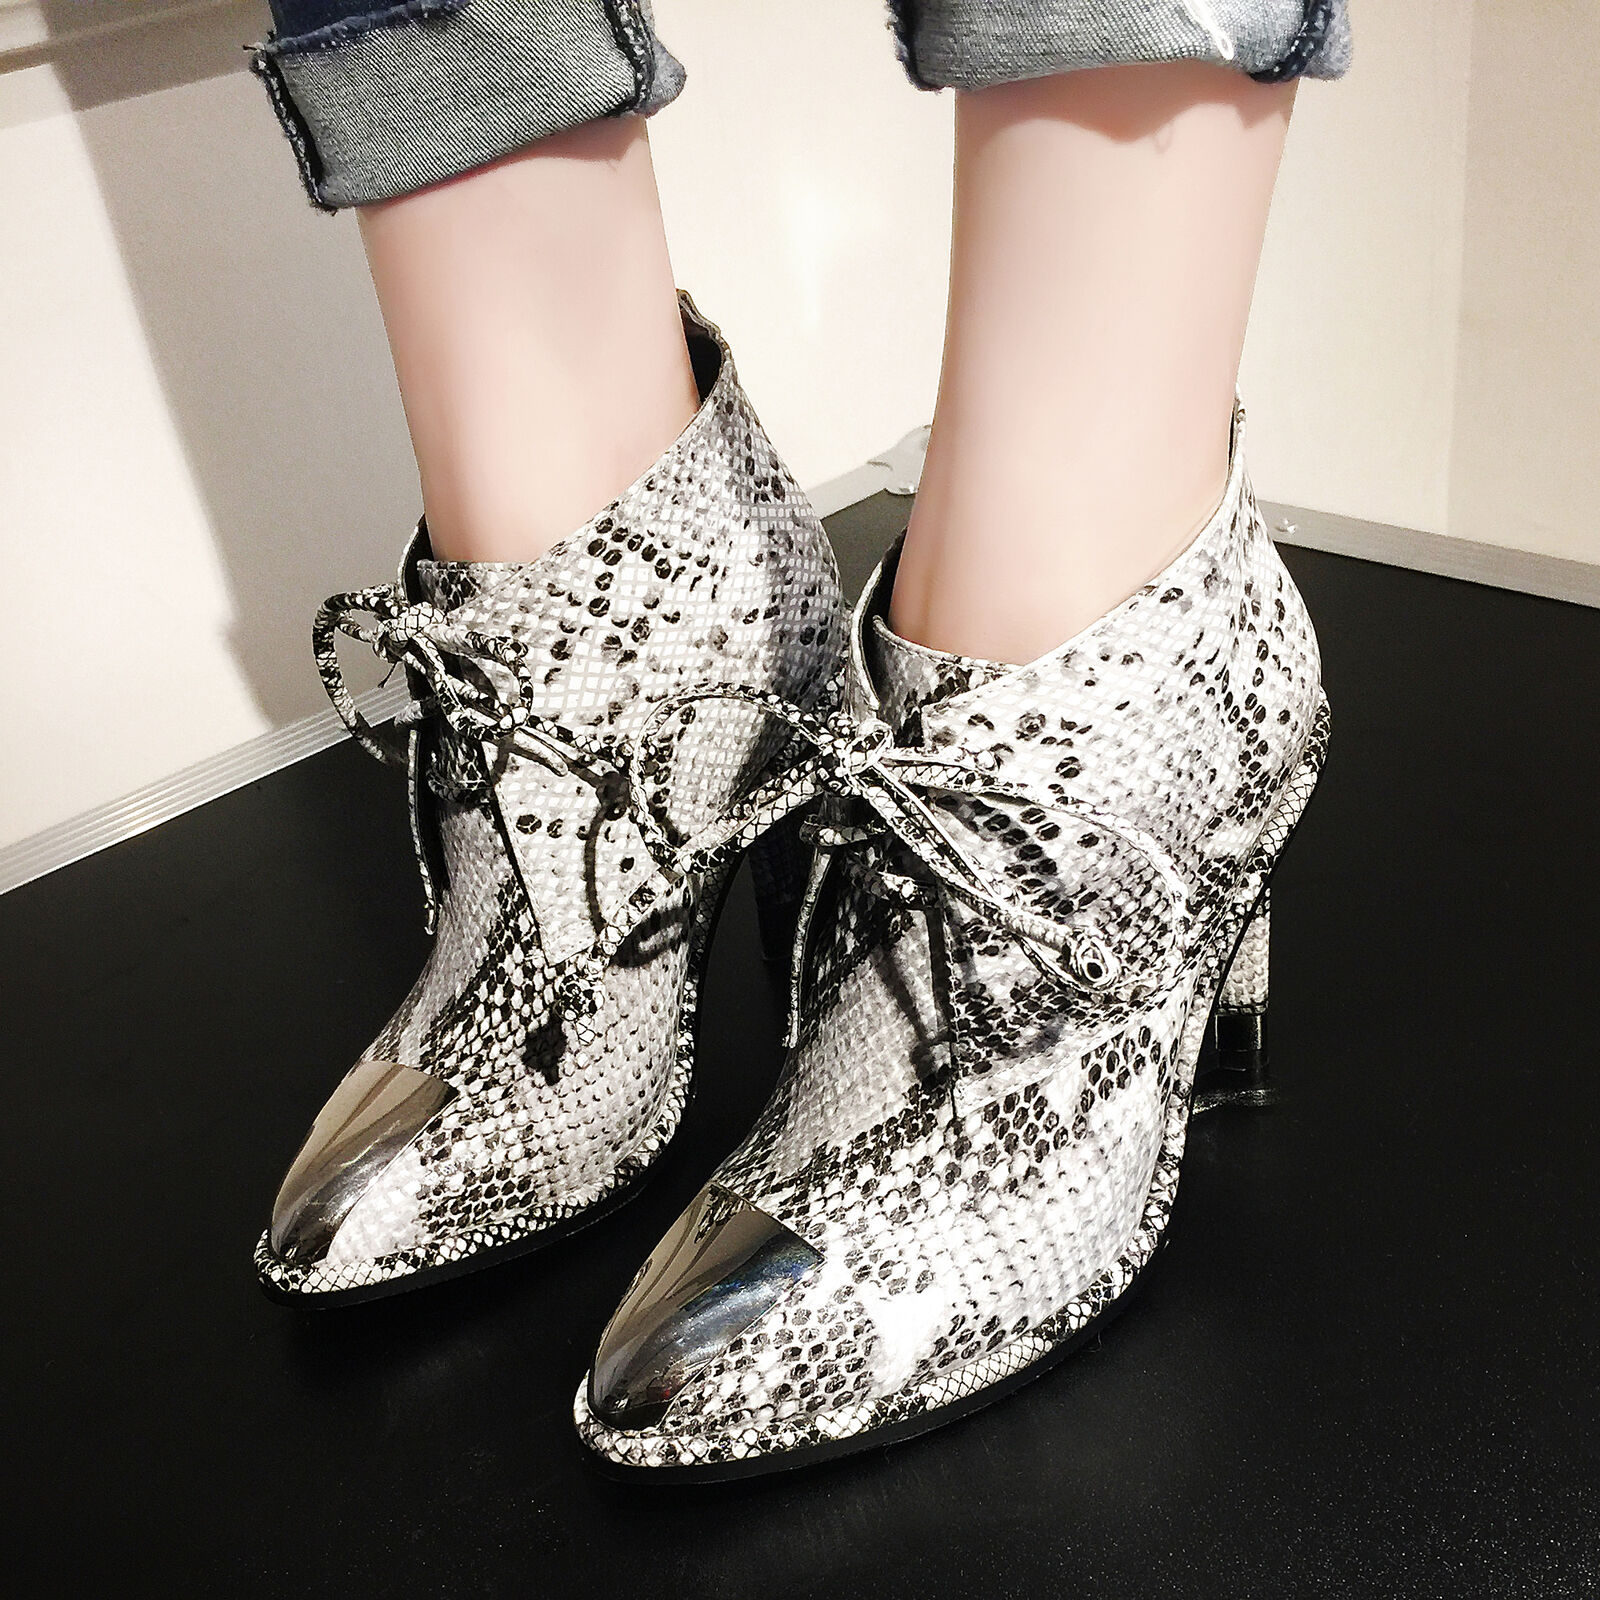 Womens Leather Lace Up Ankle Boots Snakeskin Pattern Block High Heels shoes D338